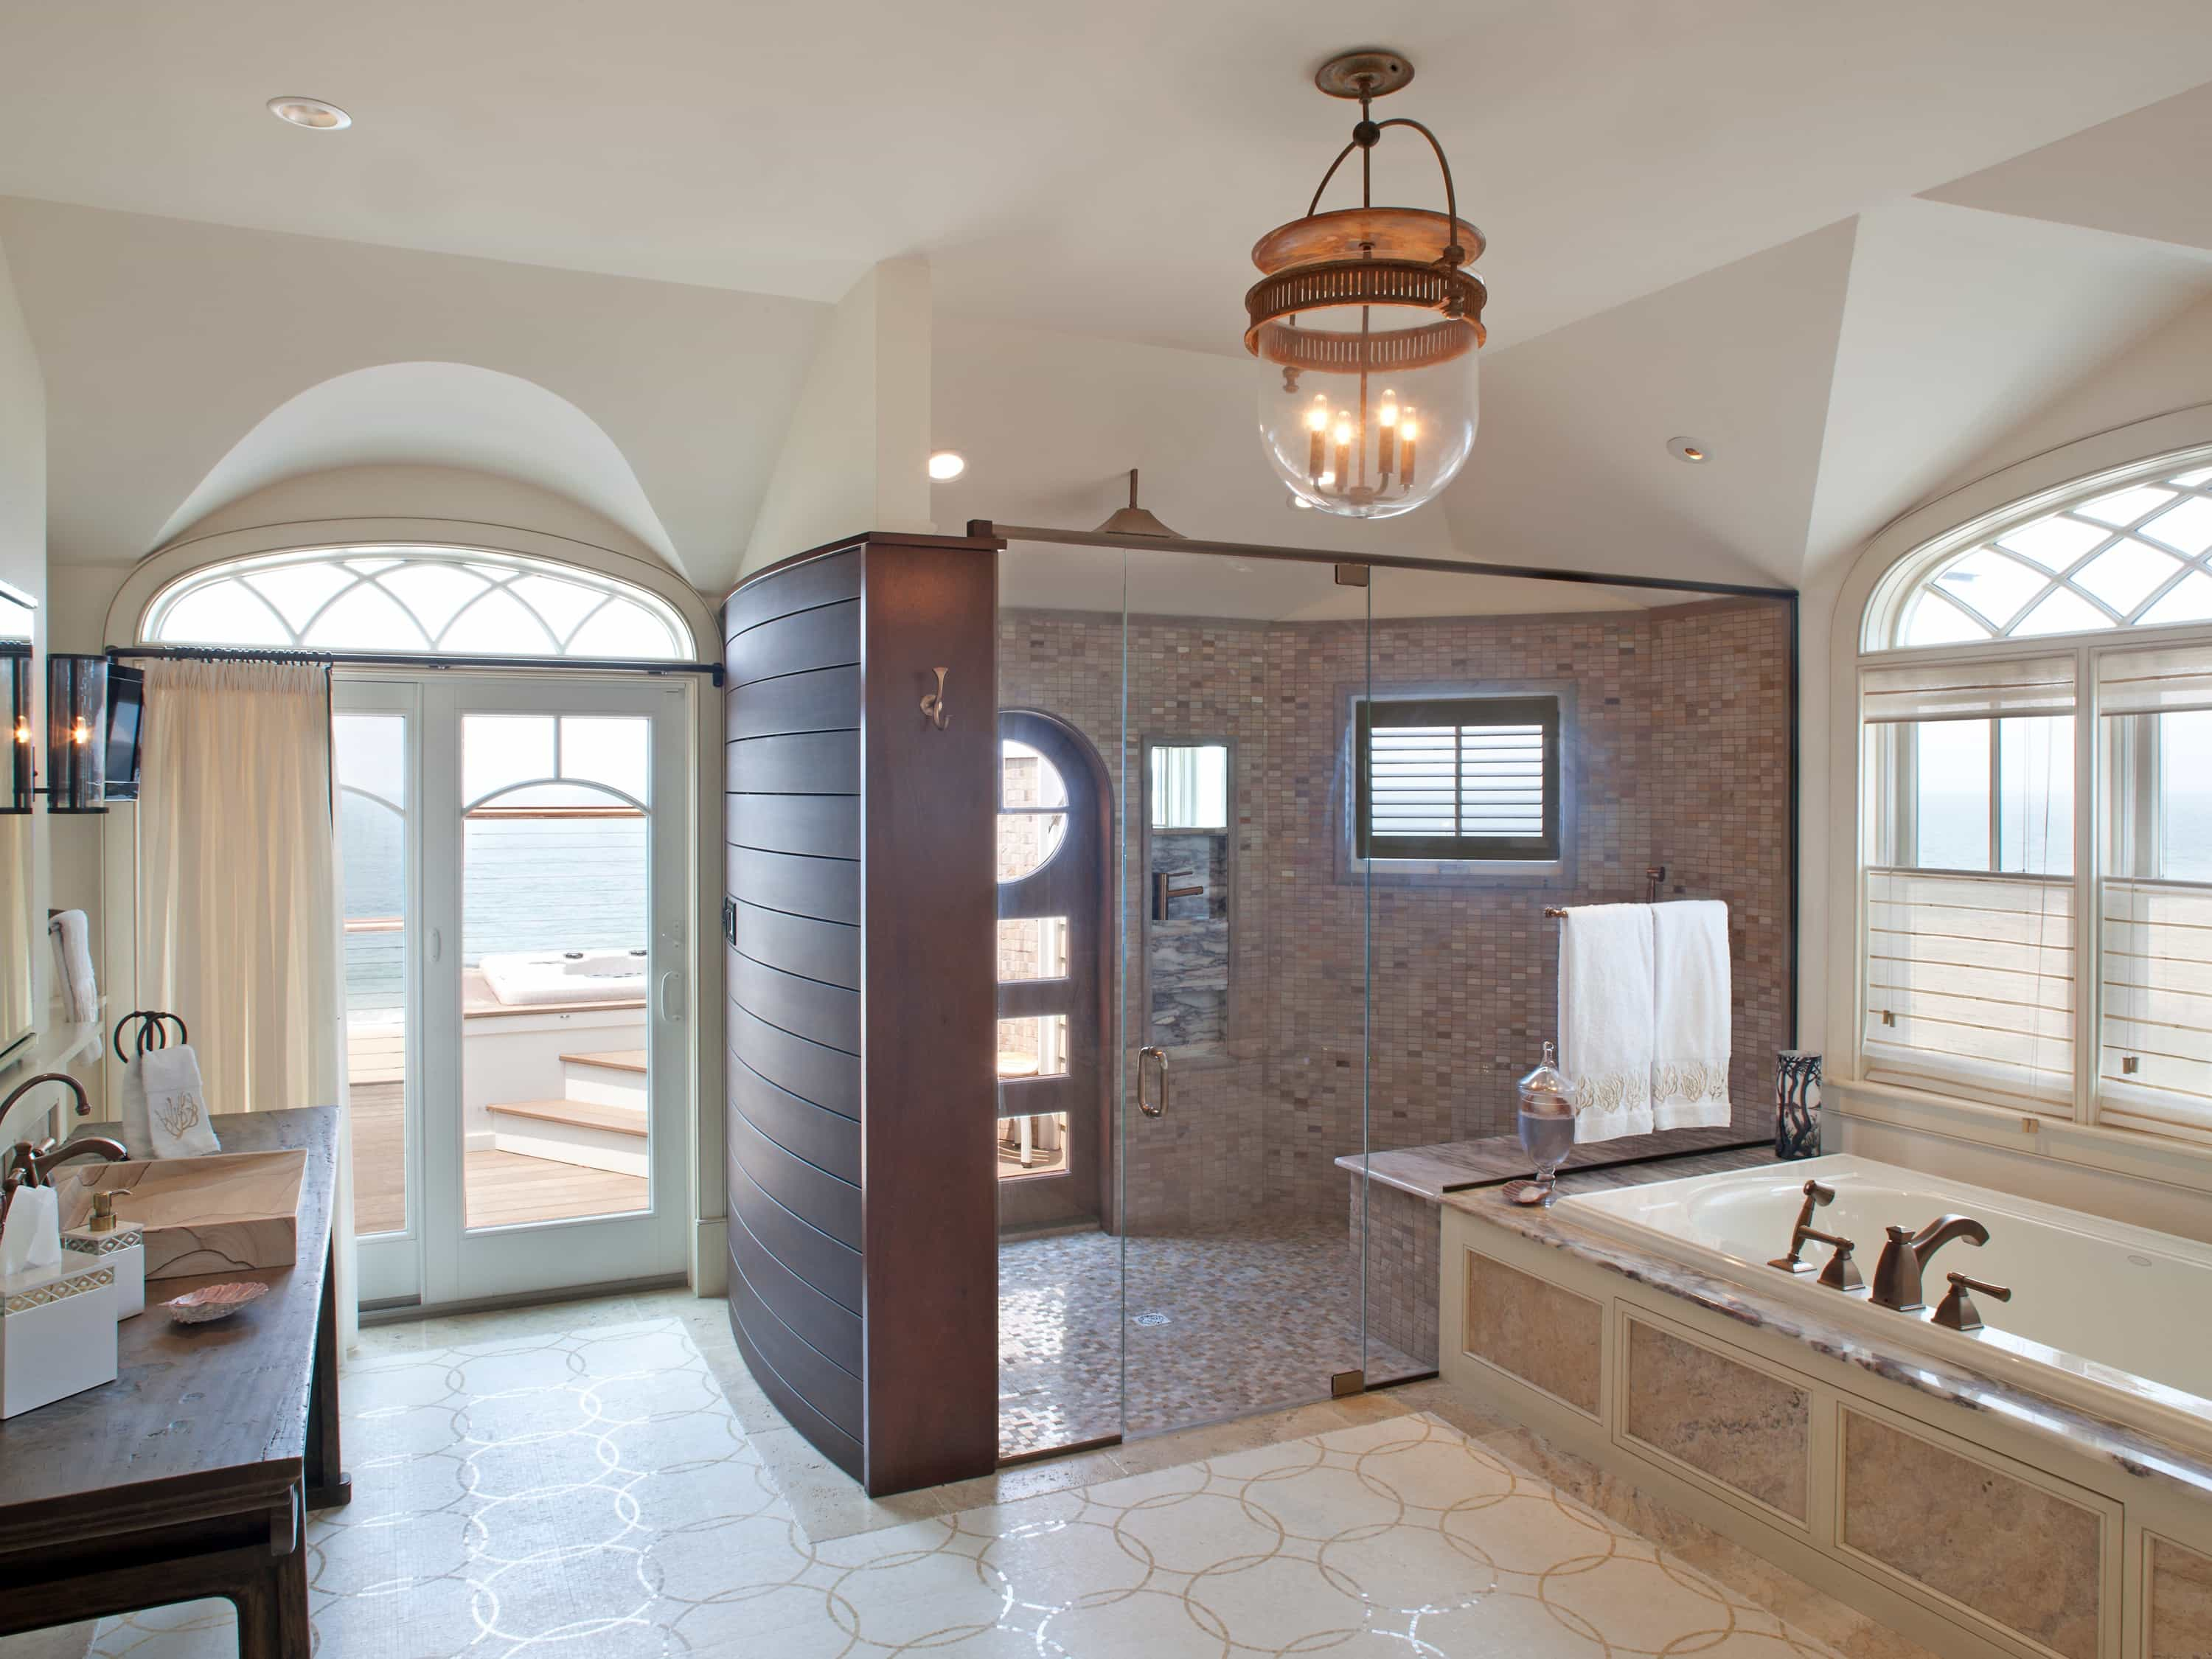 French Bathroom Interior Design Style (View 24 of 29)